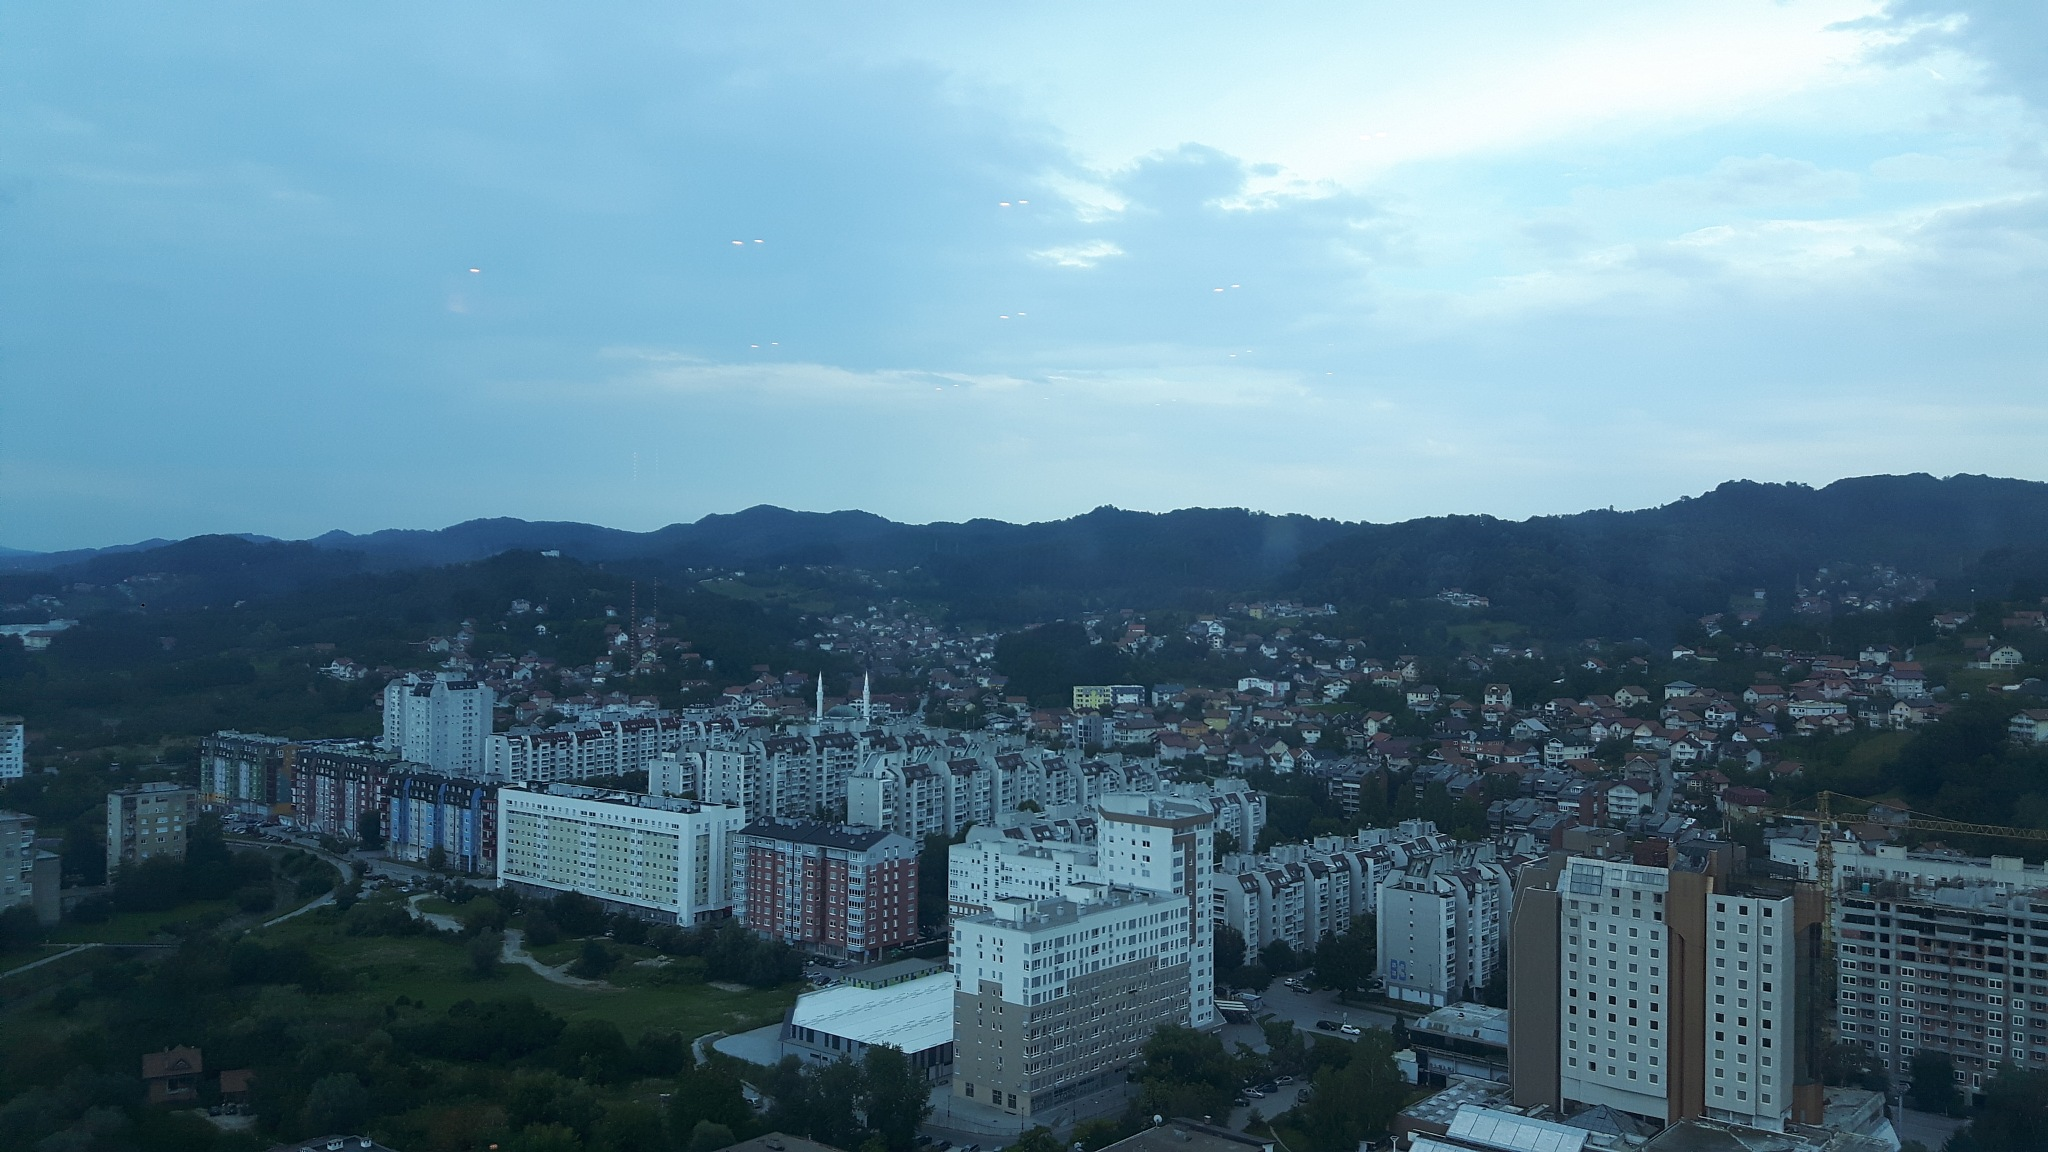 Tuzla seen from 20th floor of the hotel Mellain by Mevludin_Hasanovic